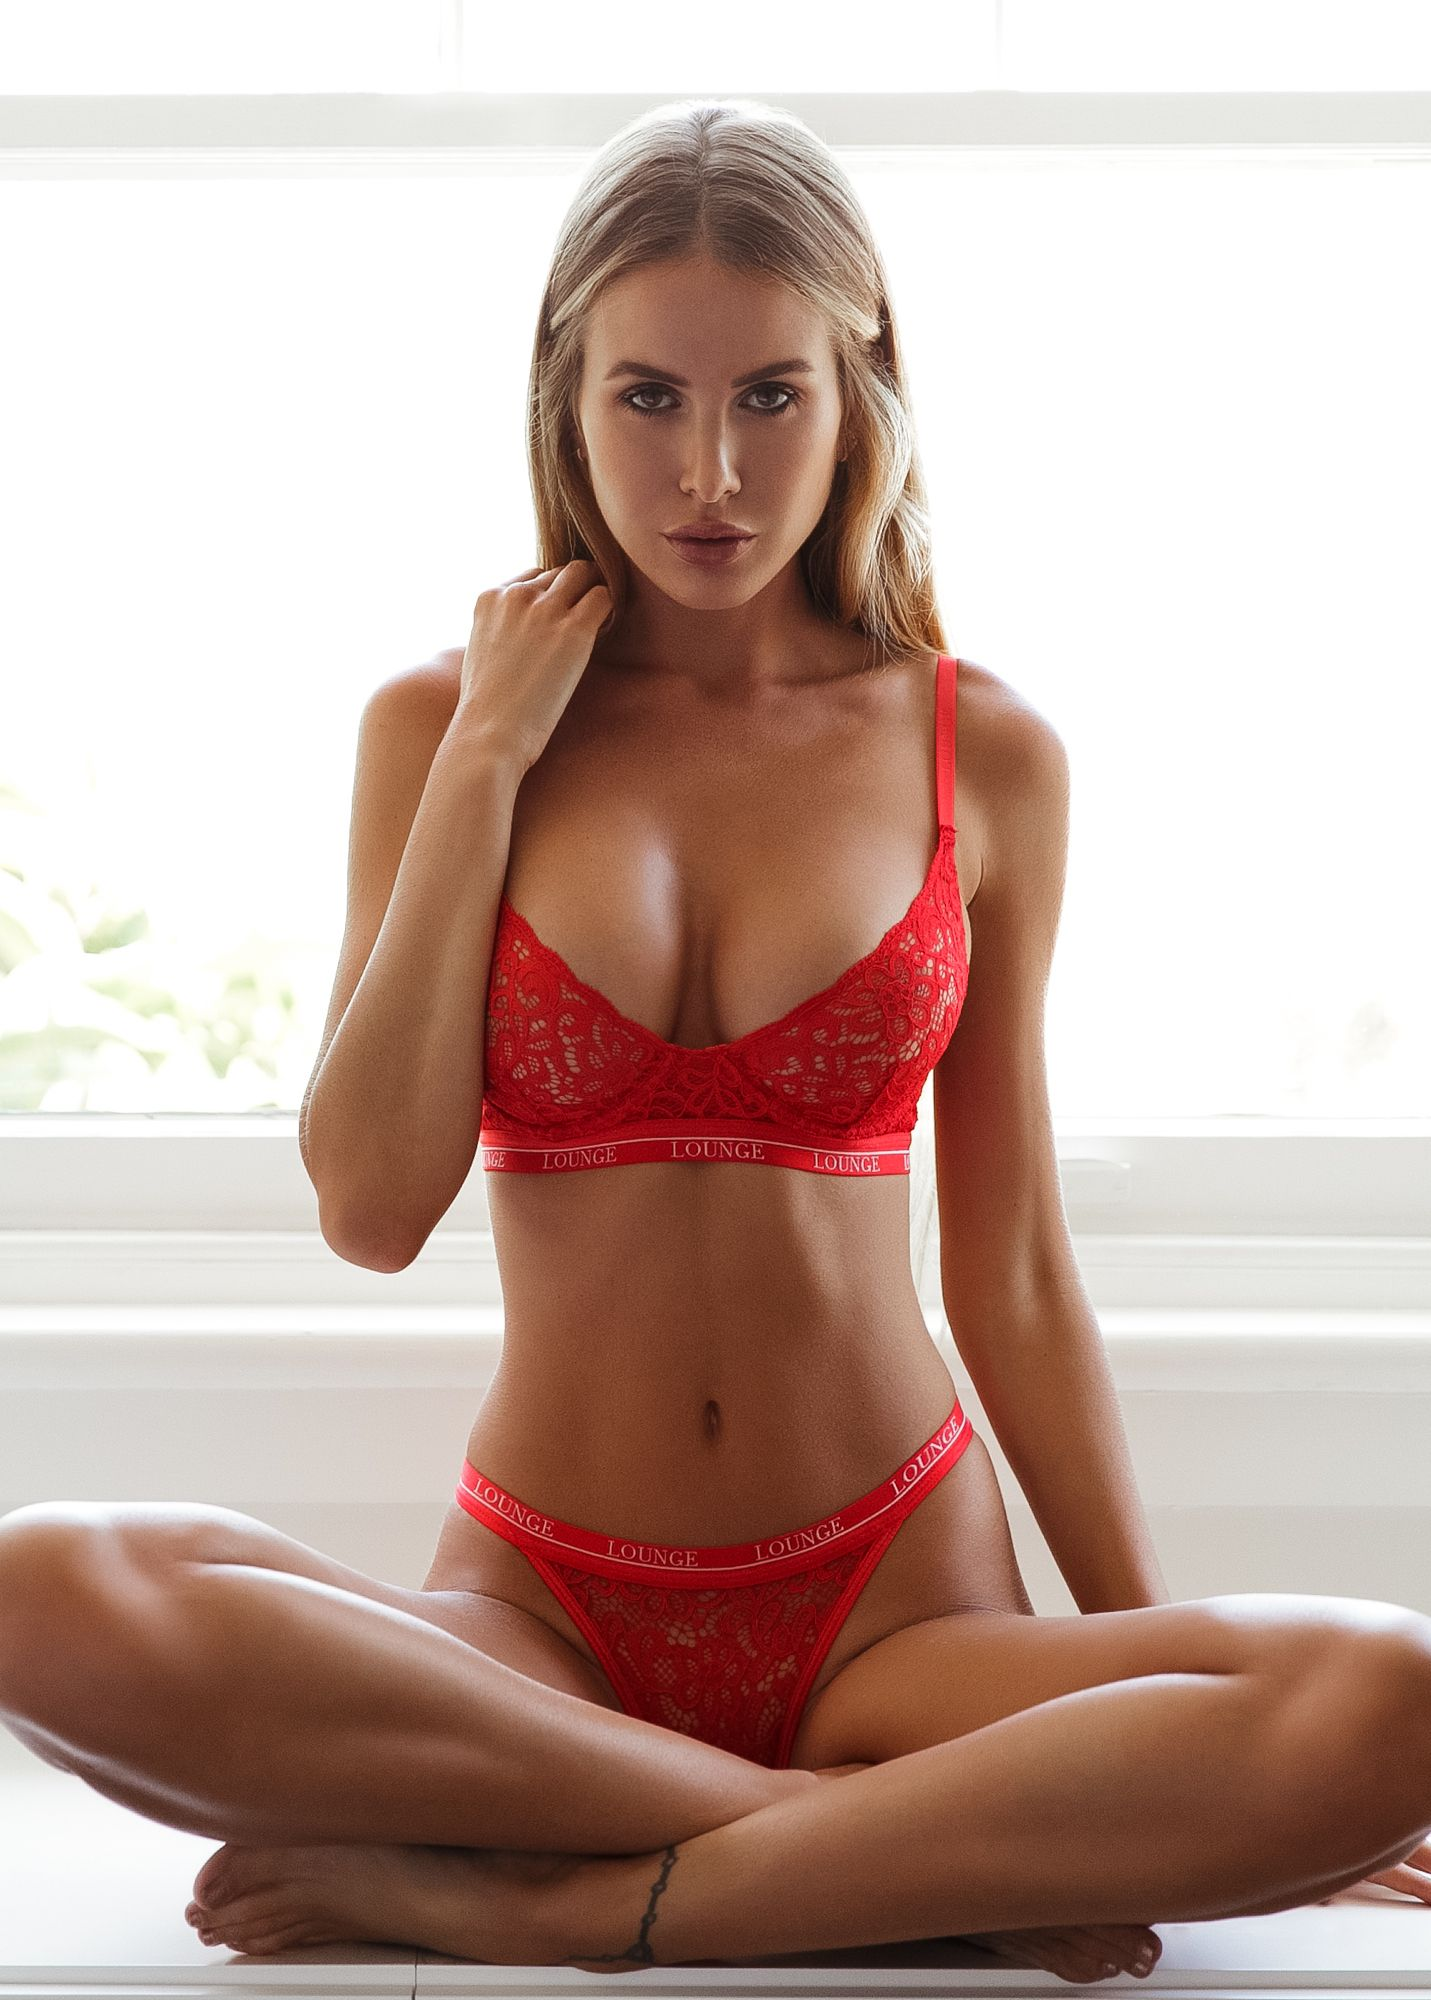 77dba3705 Use the code LOVETOLOUNGE for 10% off  loungeunderwear